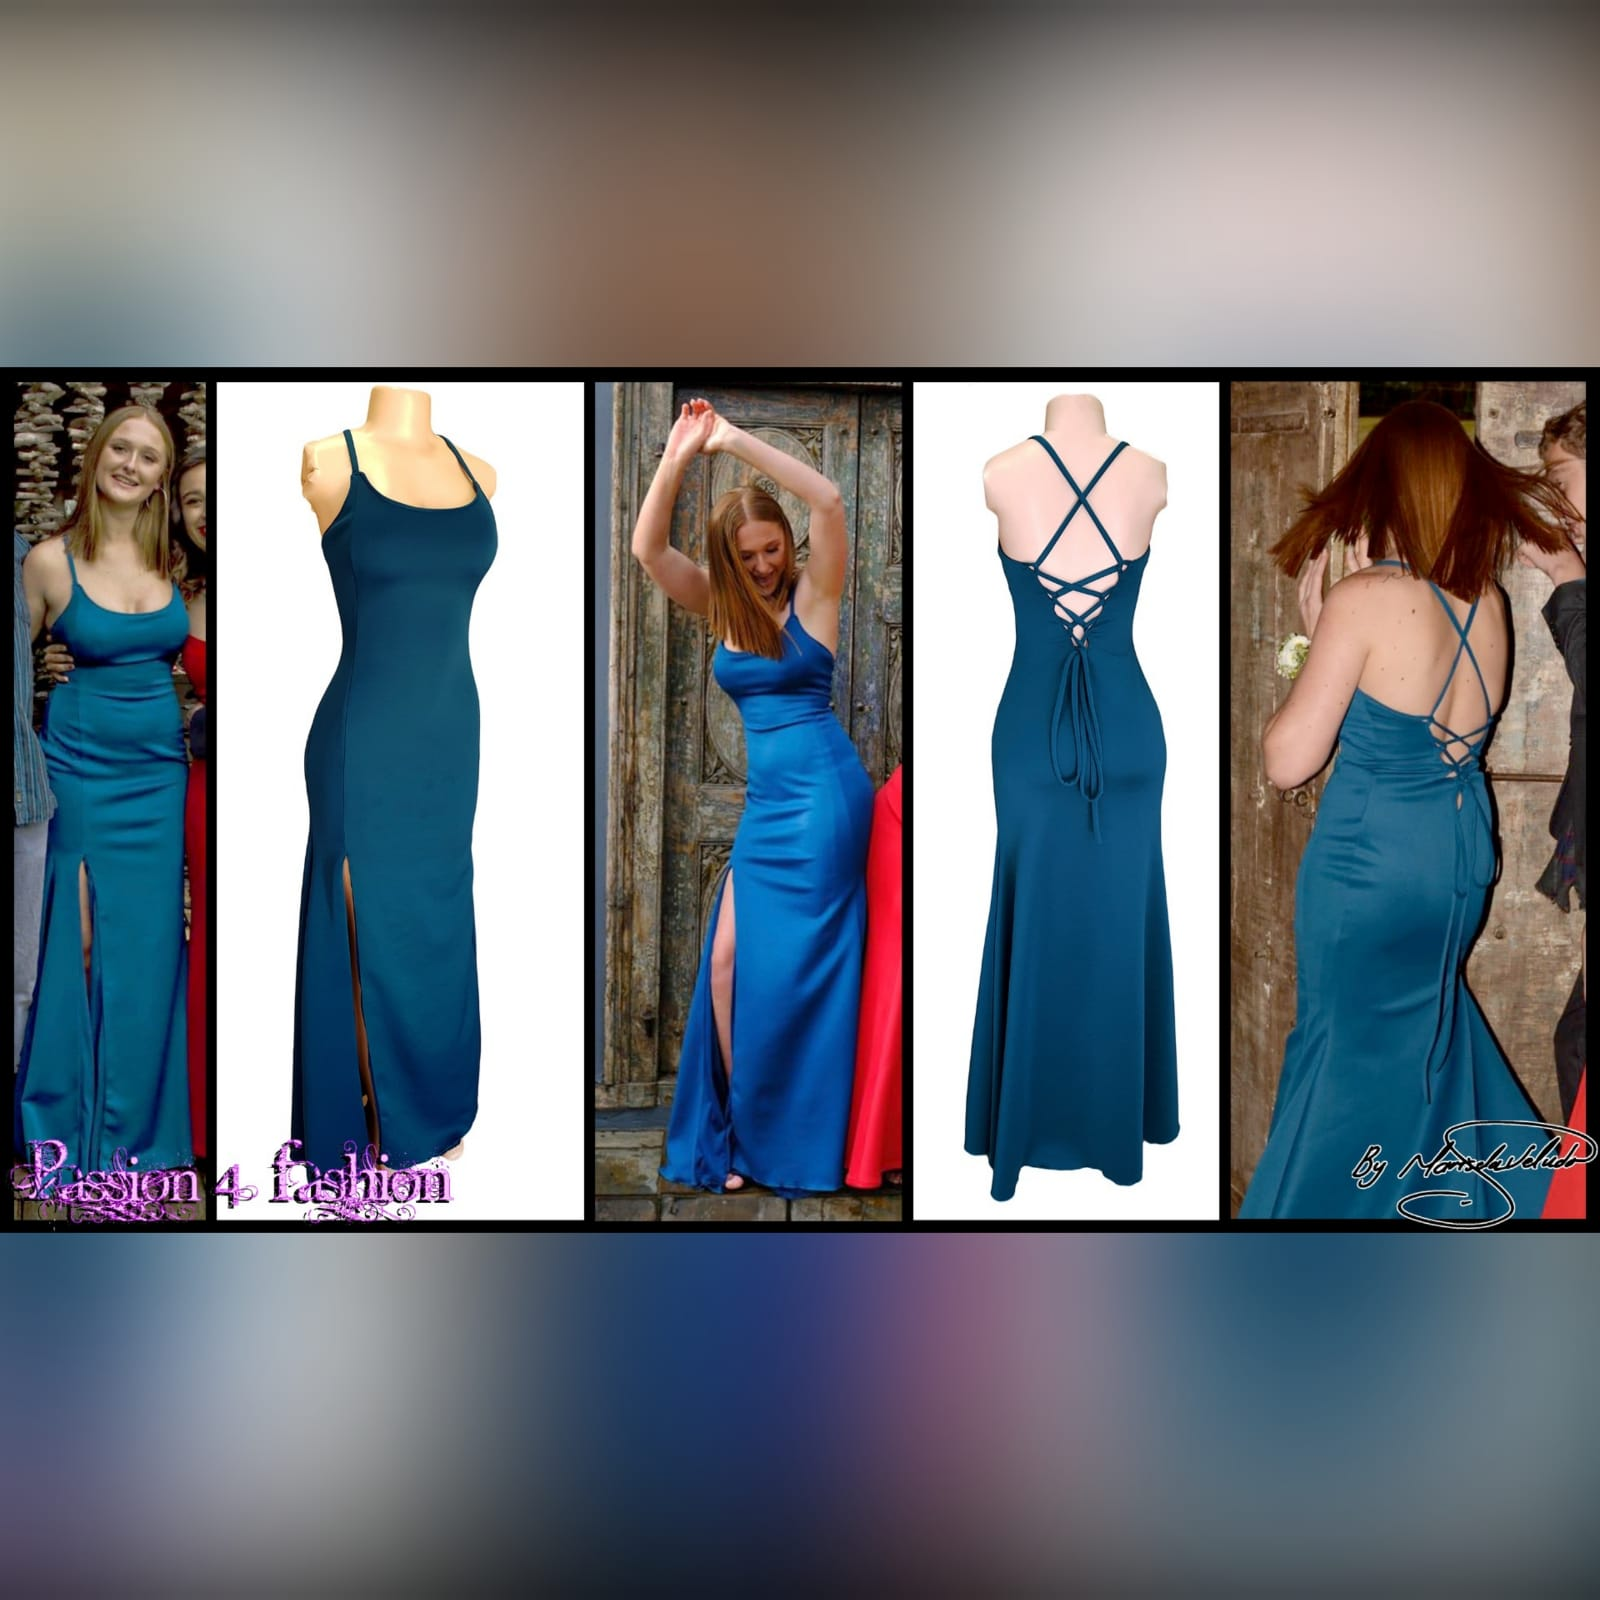 Teal long straight cut prom dress with a slit 4 teal long straight cut prom dress with a slit. Rounded neckline. V back with lace up detail.